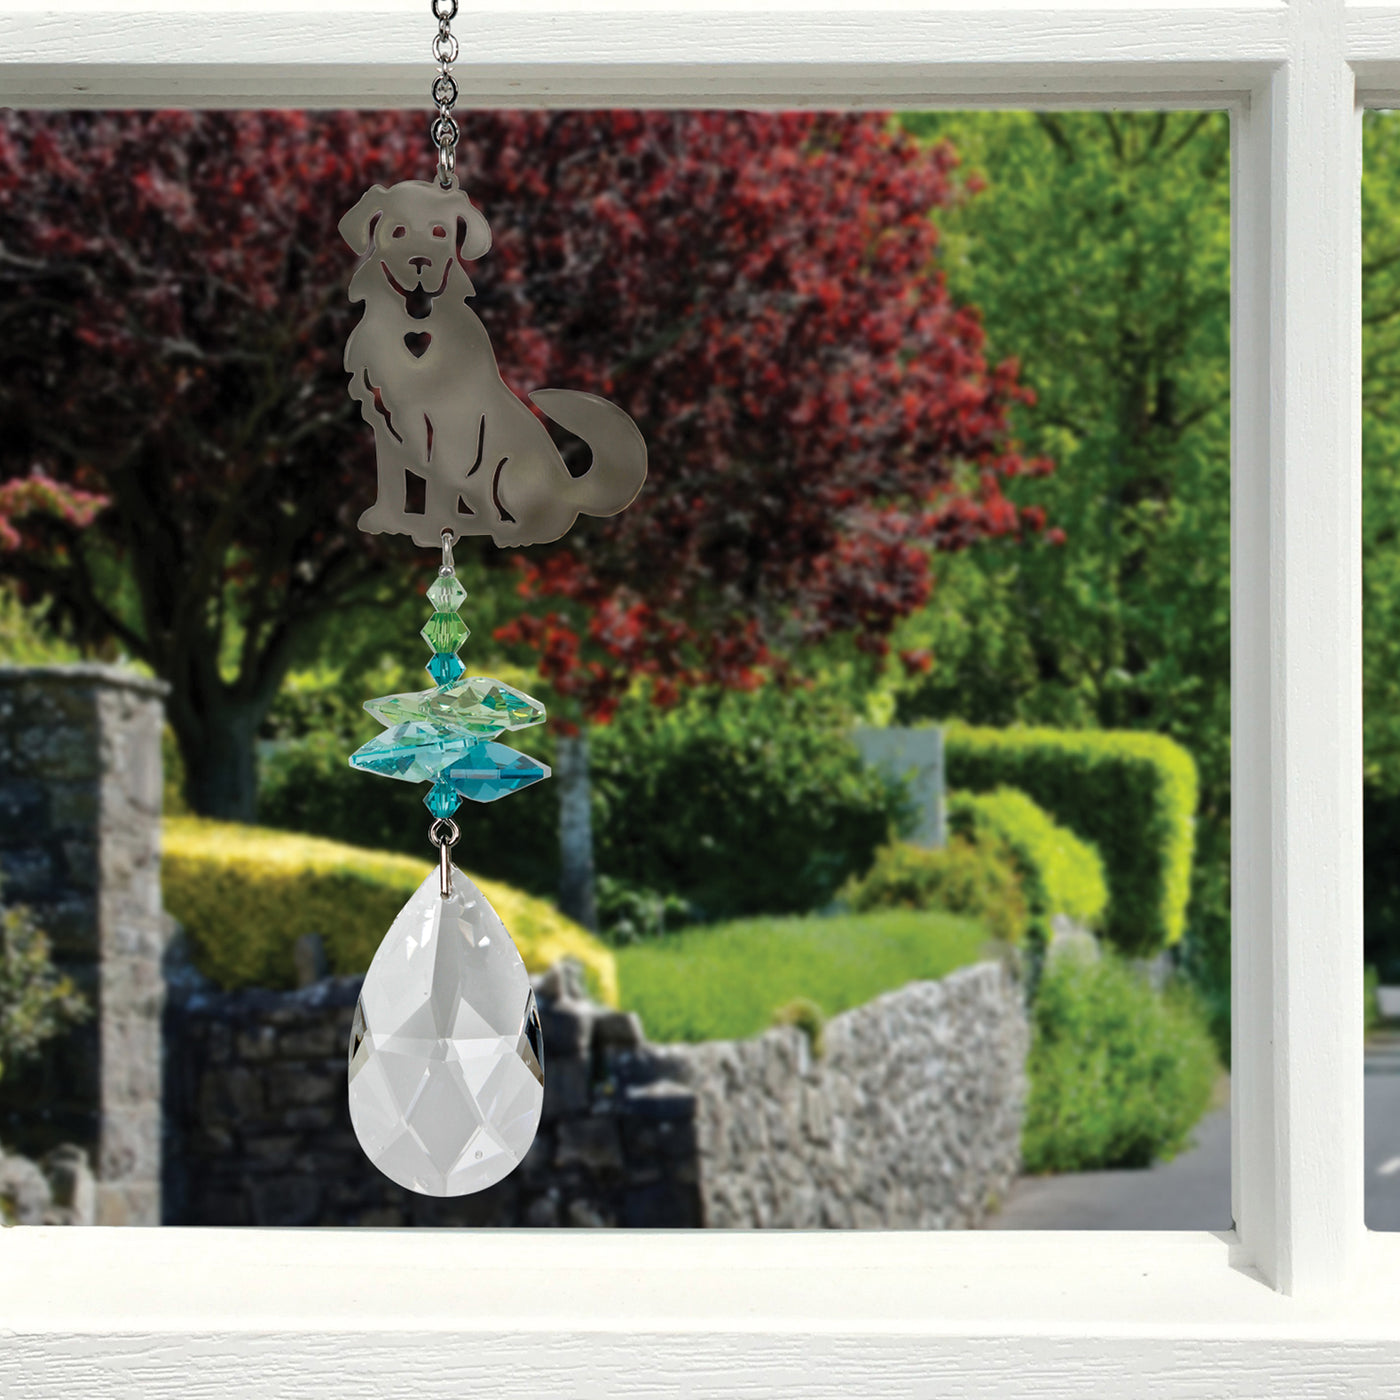 Suncatchers - Dog - Thoughtful Mementos | Healing Hearts Journey